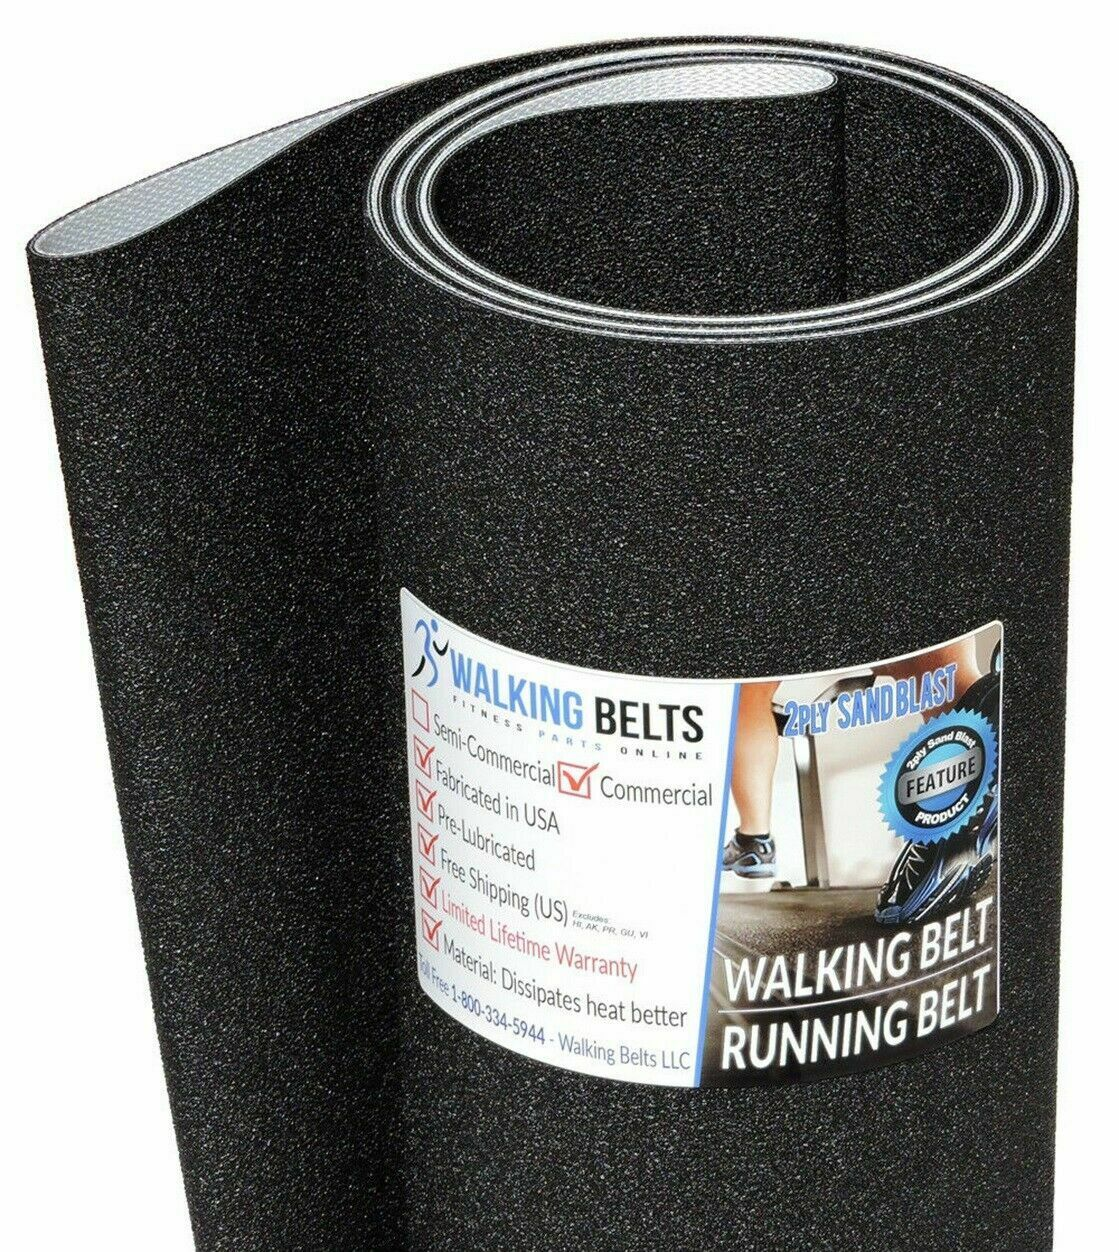 CAUTL85023 Nordictrack 9600 TV Aussie Walking Belt 2-ply Sand Blast + 1oz Lube